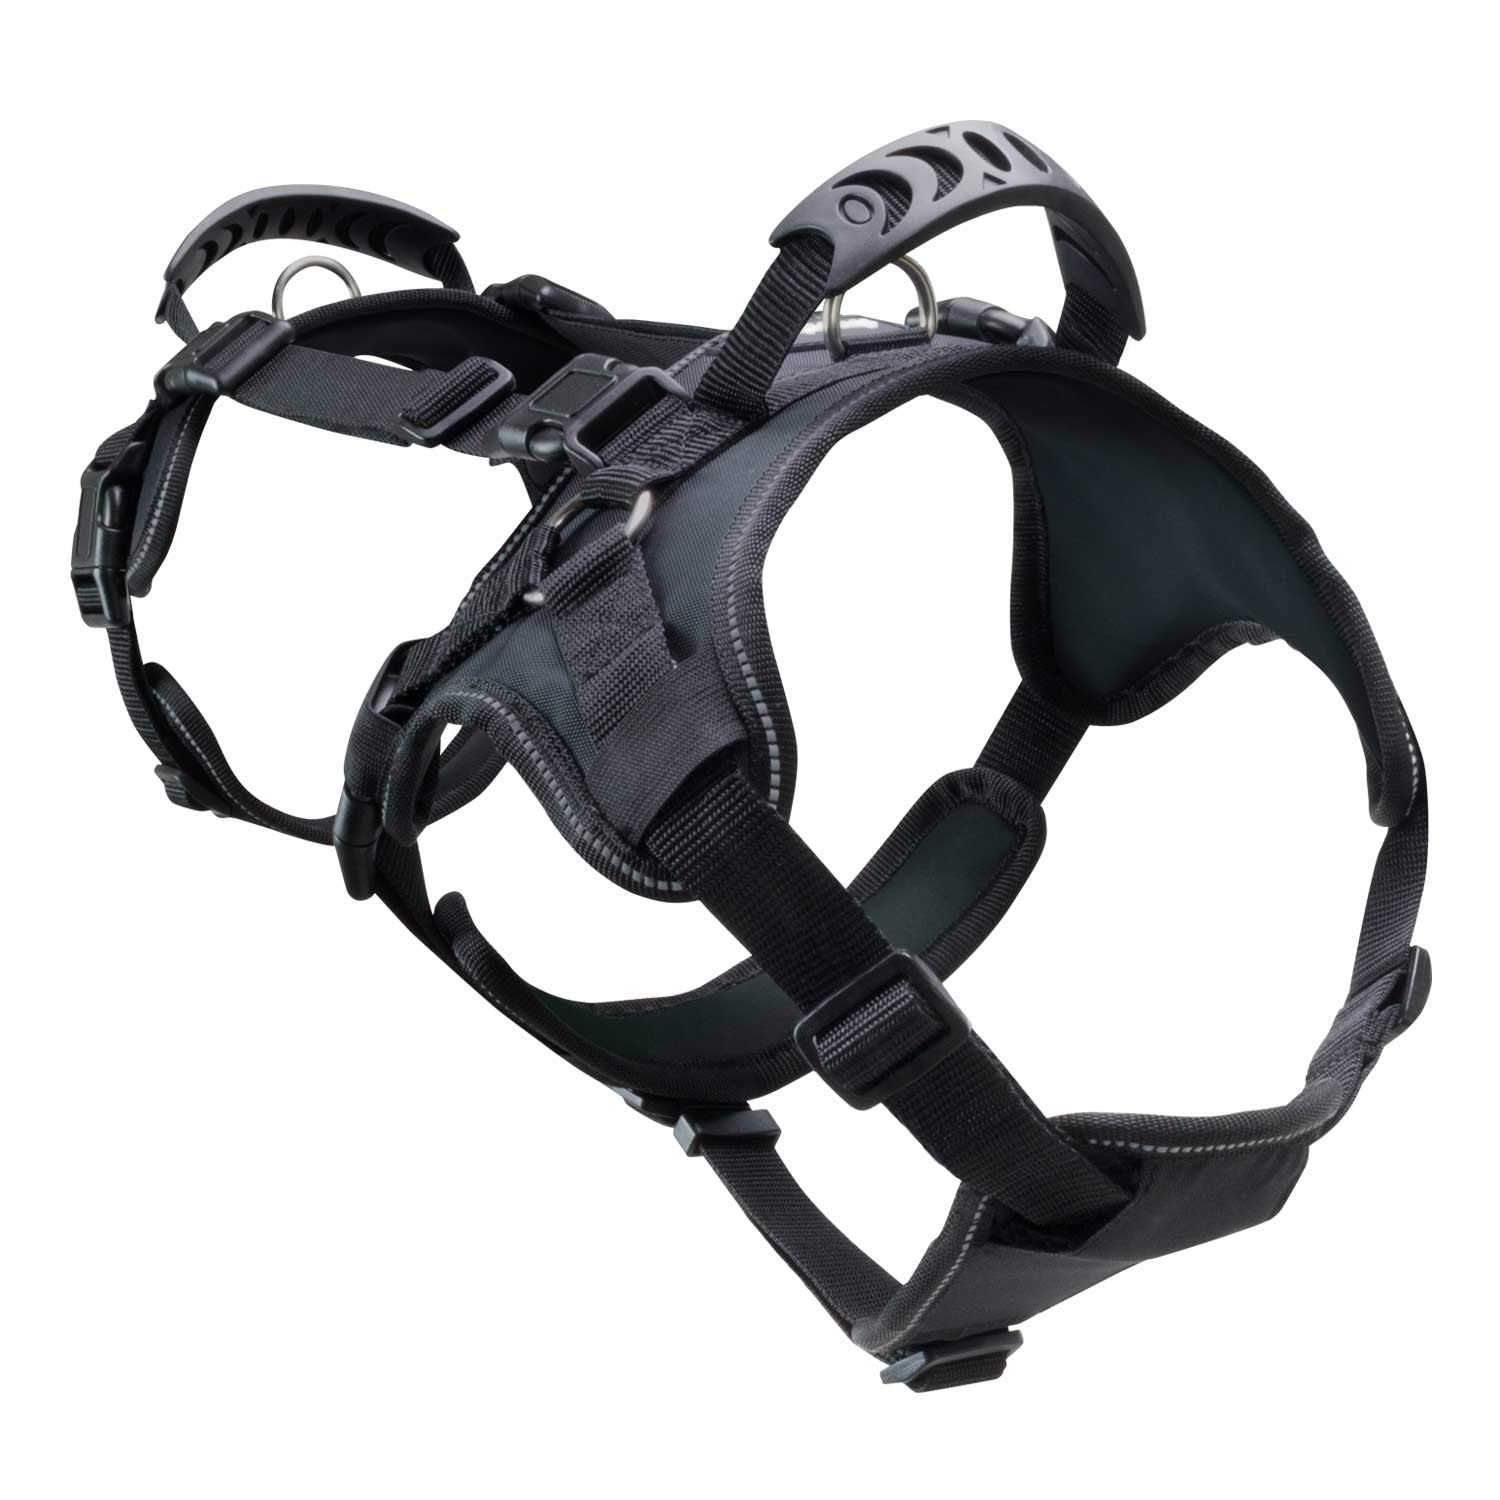 FrontPet Heavy Duty Dog Lifting and Pulling Harness Equipment, Fits 26.5 to 31.5 Inch Body, for Walking, Running, Hiking, Lifting, Carrying and Transporting Canines and Other Pets, Large, Black